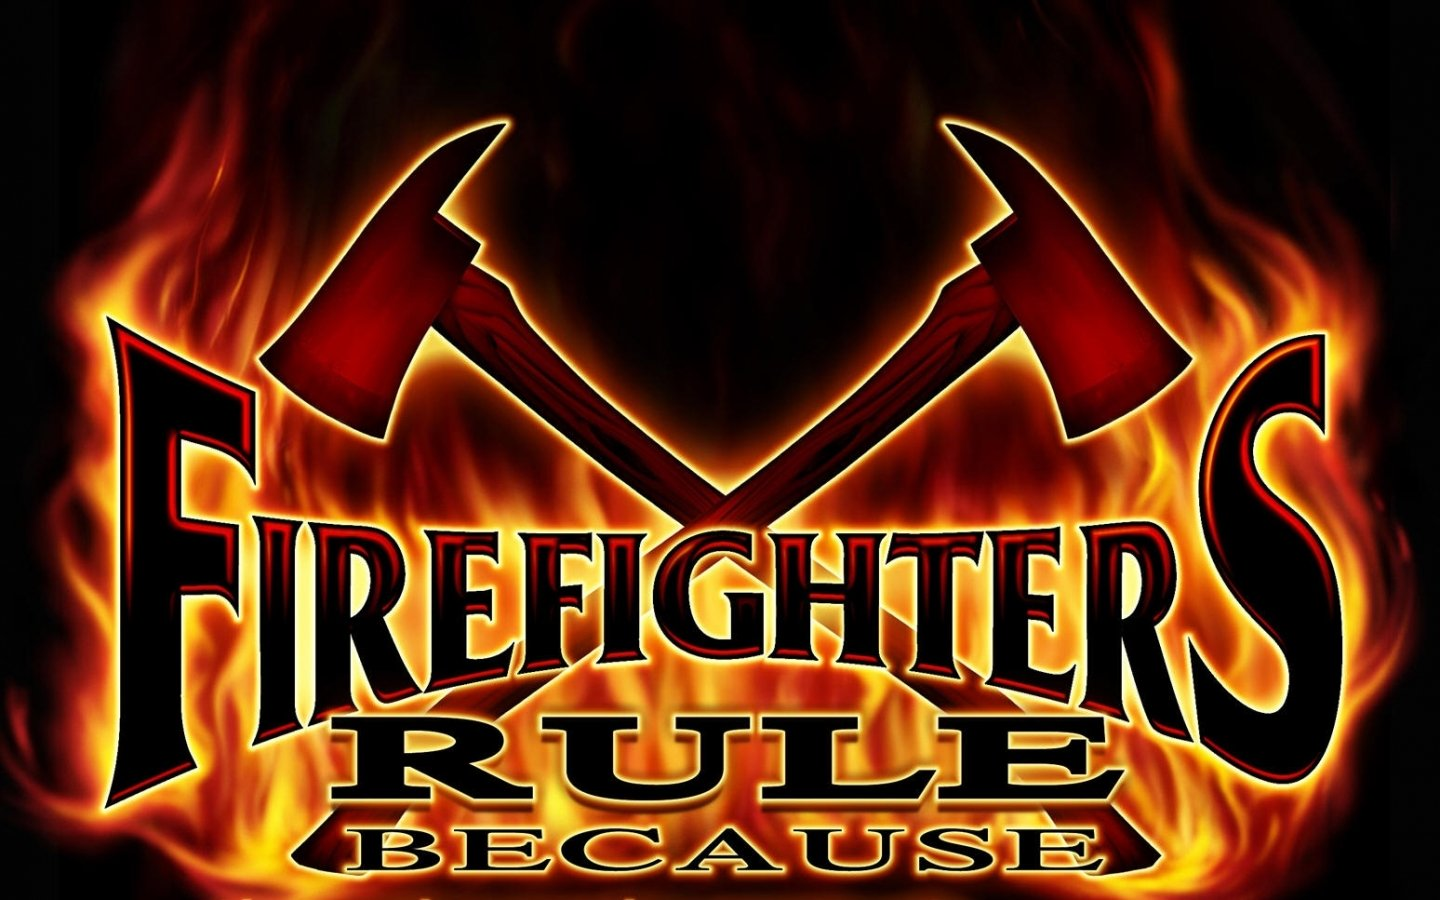 Download Wallpapers Download 1440x900 firefighters rule firefighters 1440x900